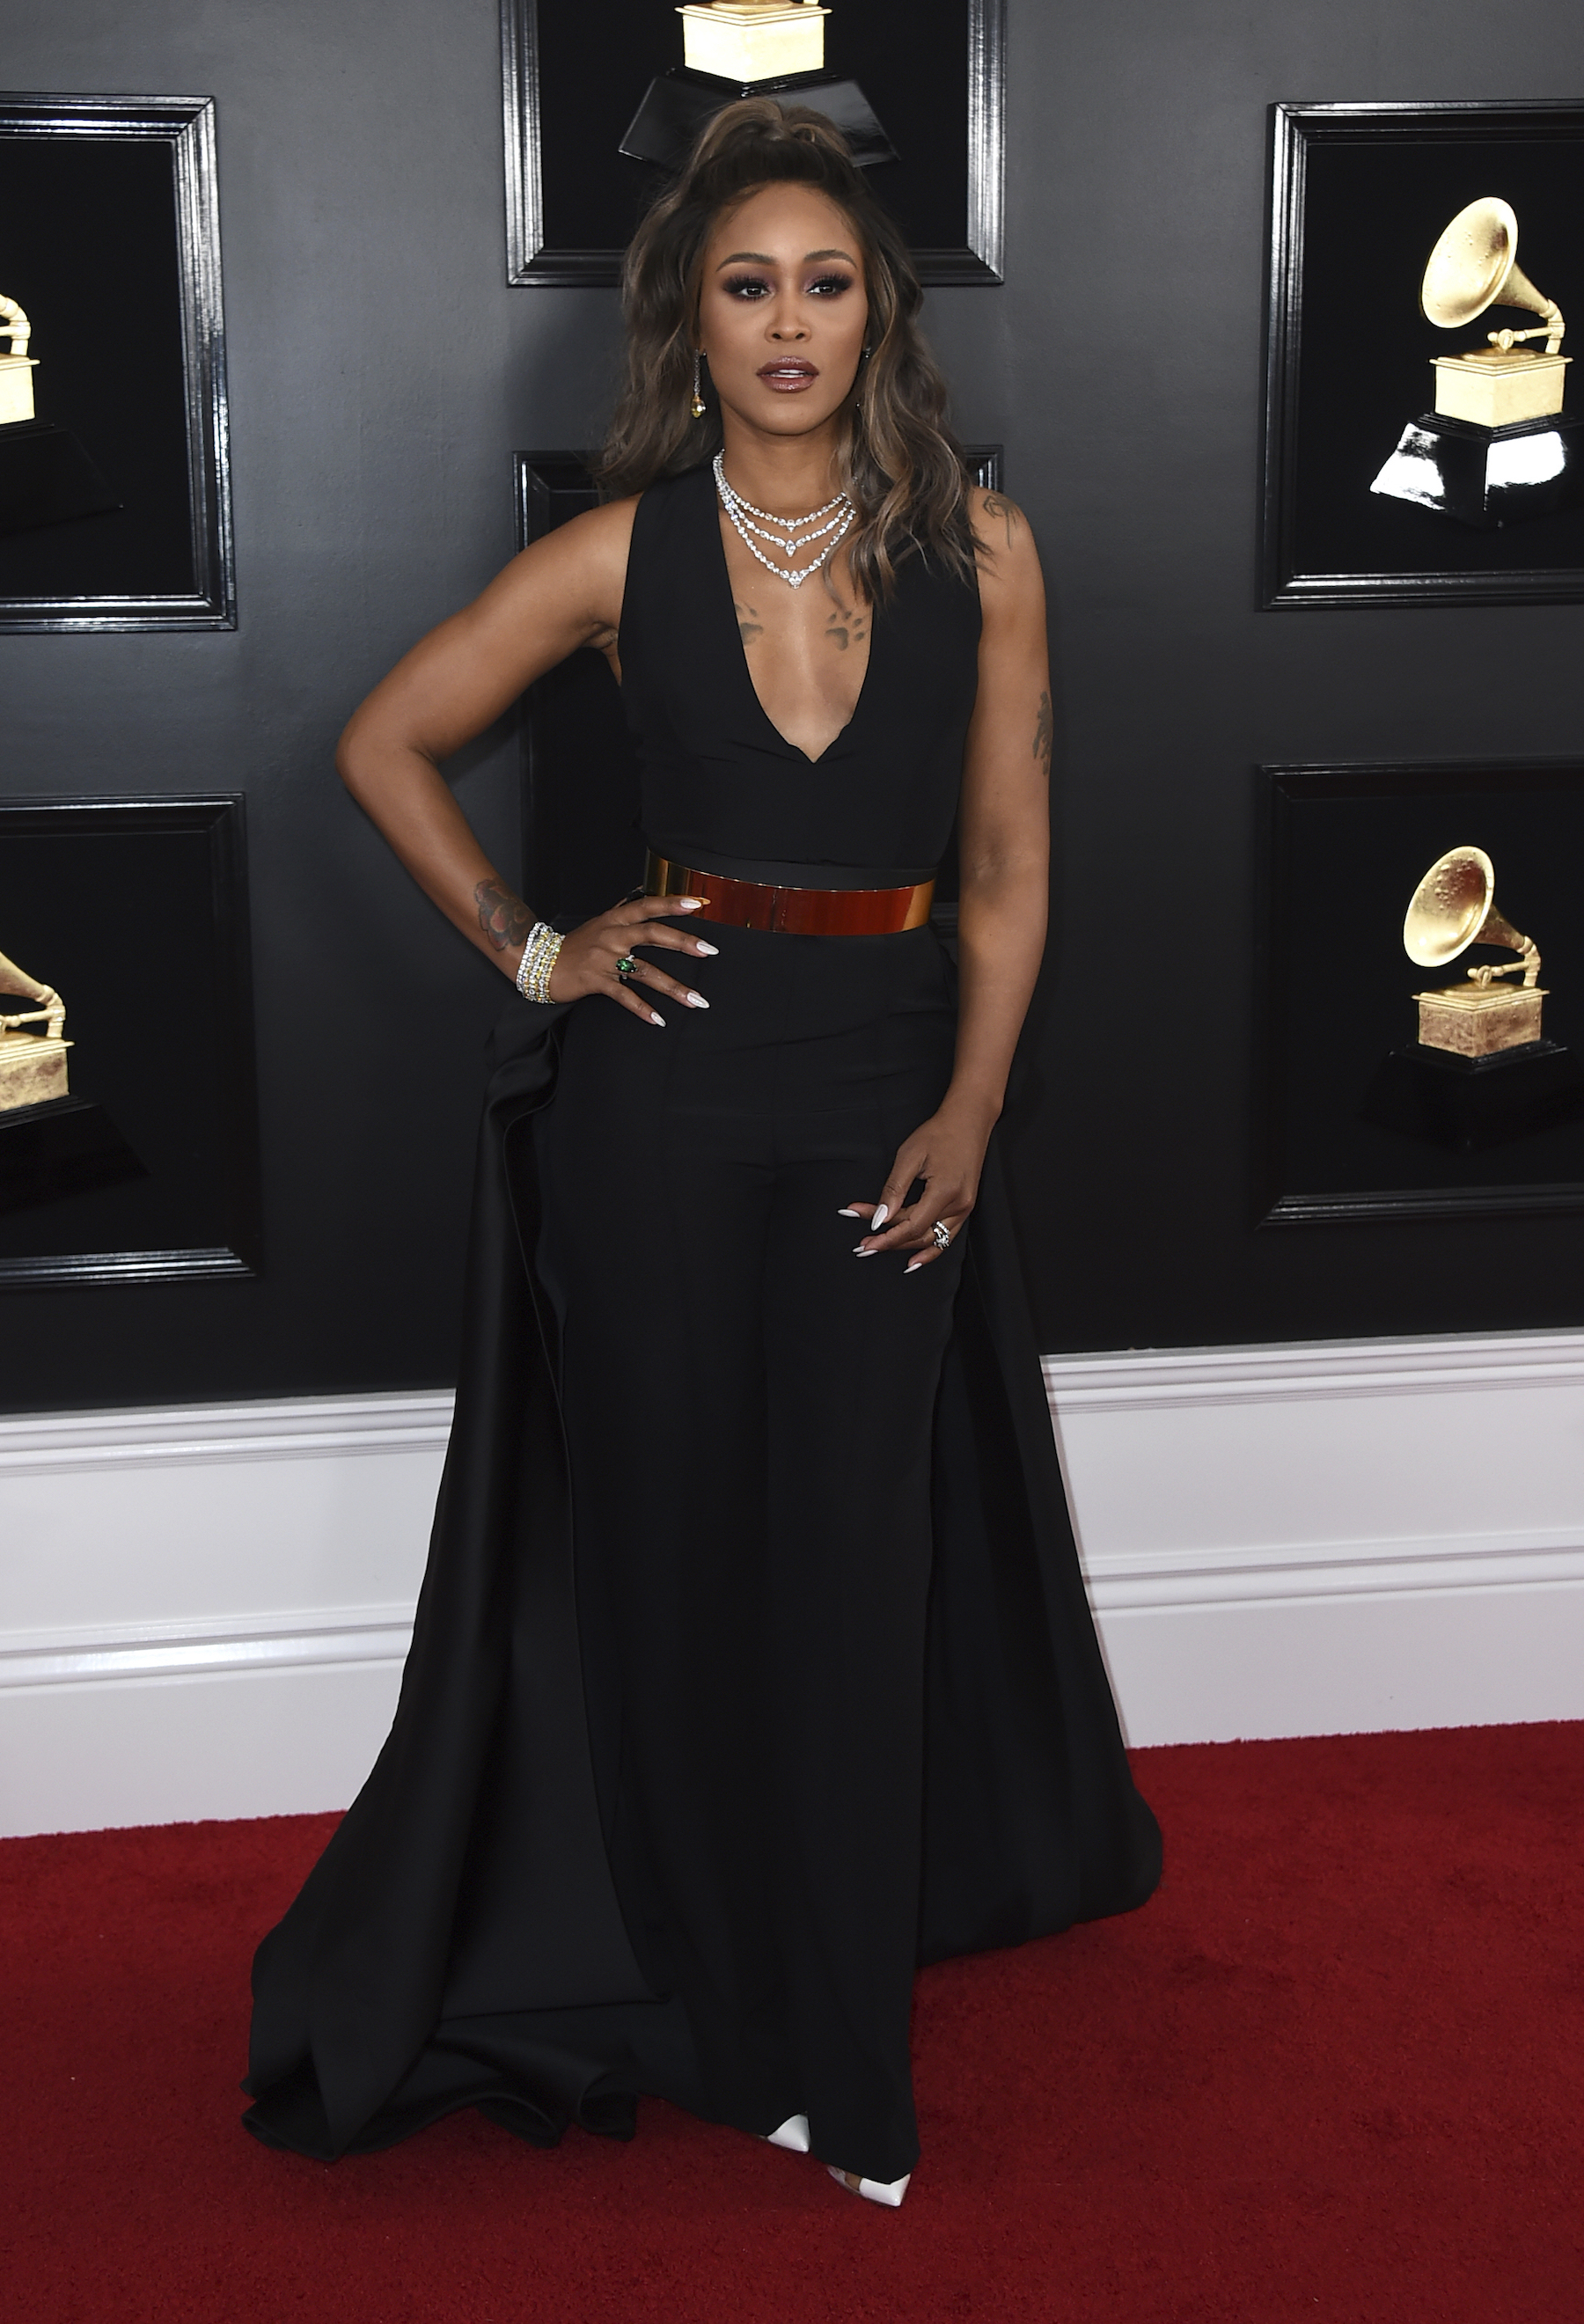 "<div class=""meta image-caption""><div class=""origin-logo origin-image ap""><span>AP</span></div><span class=""caption-text"">Eve arrives at the 61st annual Grammy Awards at the Staples Center on Sunday, Feb. 10, 2019, in Los Angeles. (Jordan Strauss/Invision/AP)</span></div>"